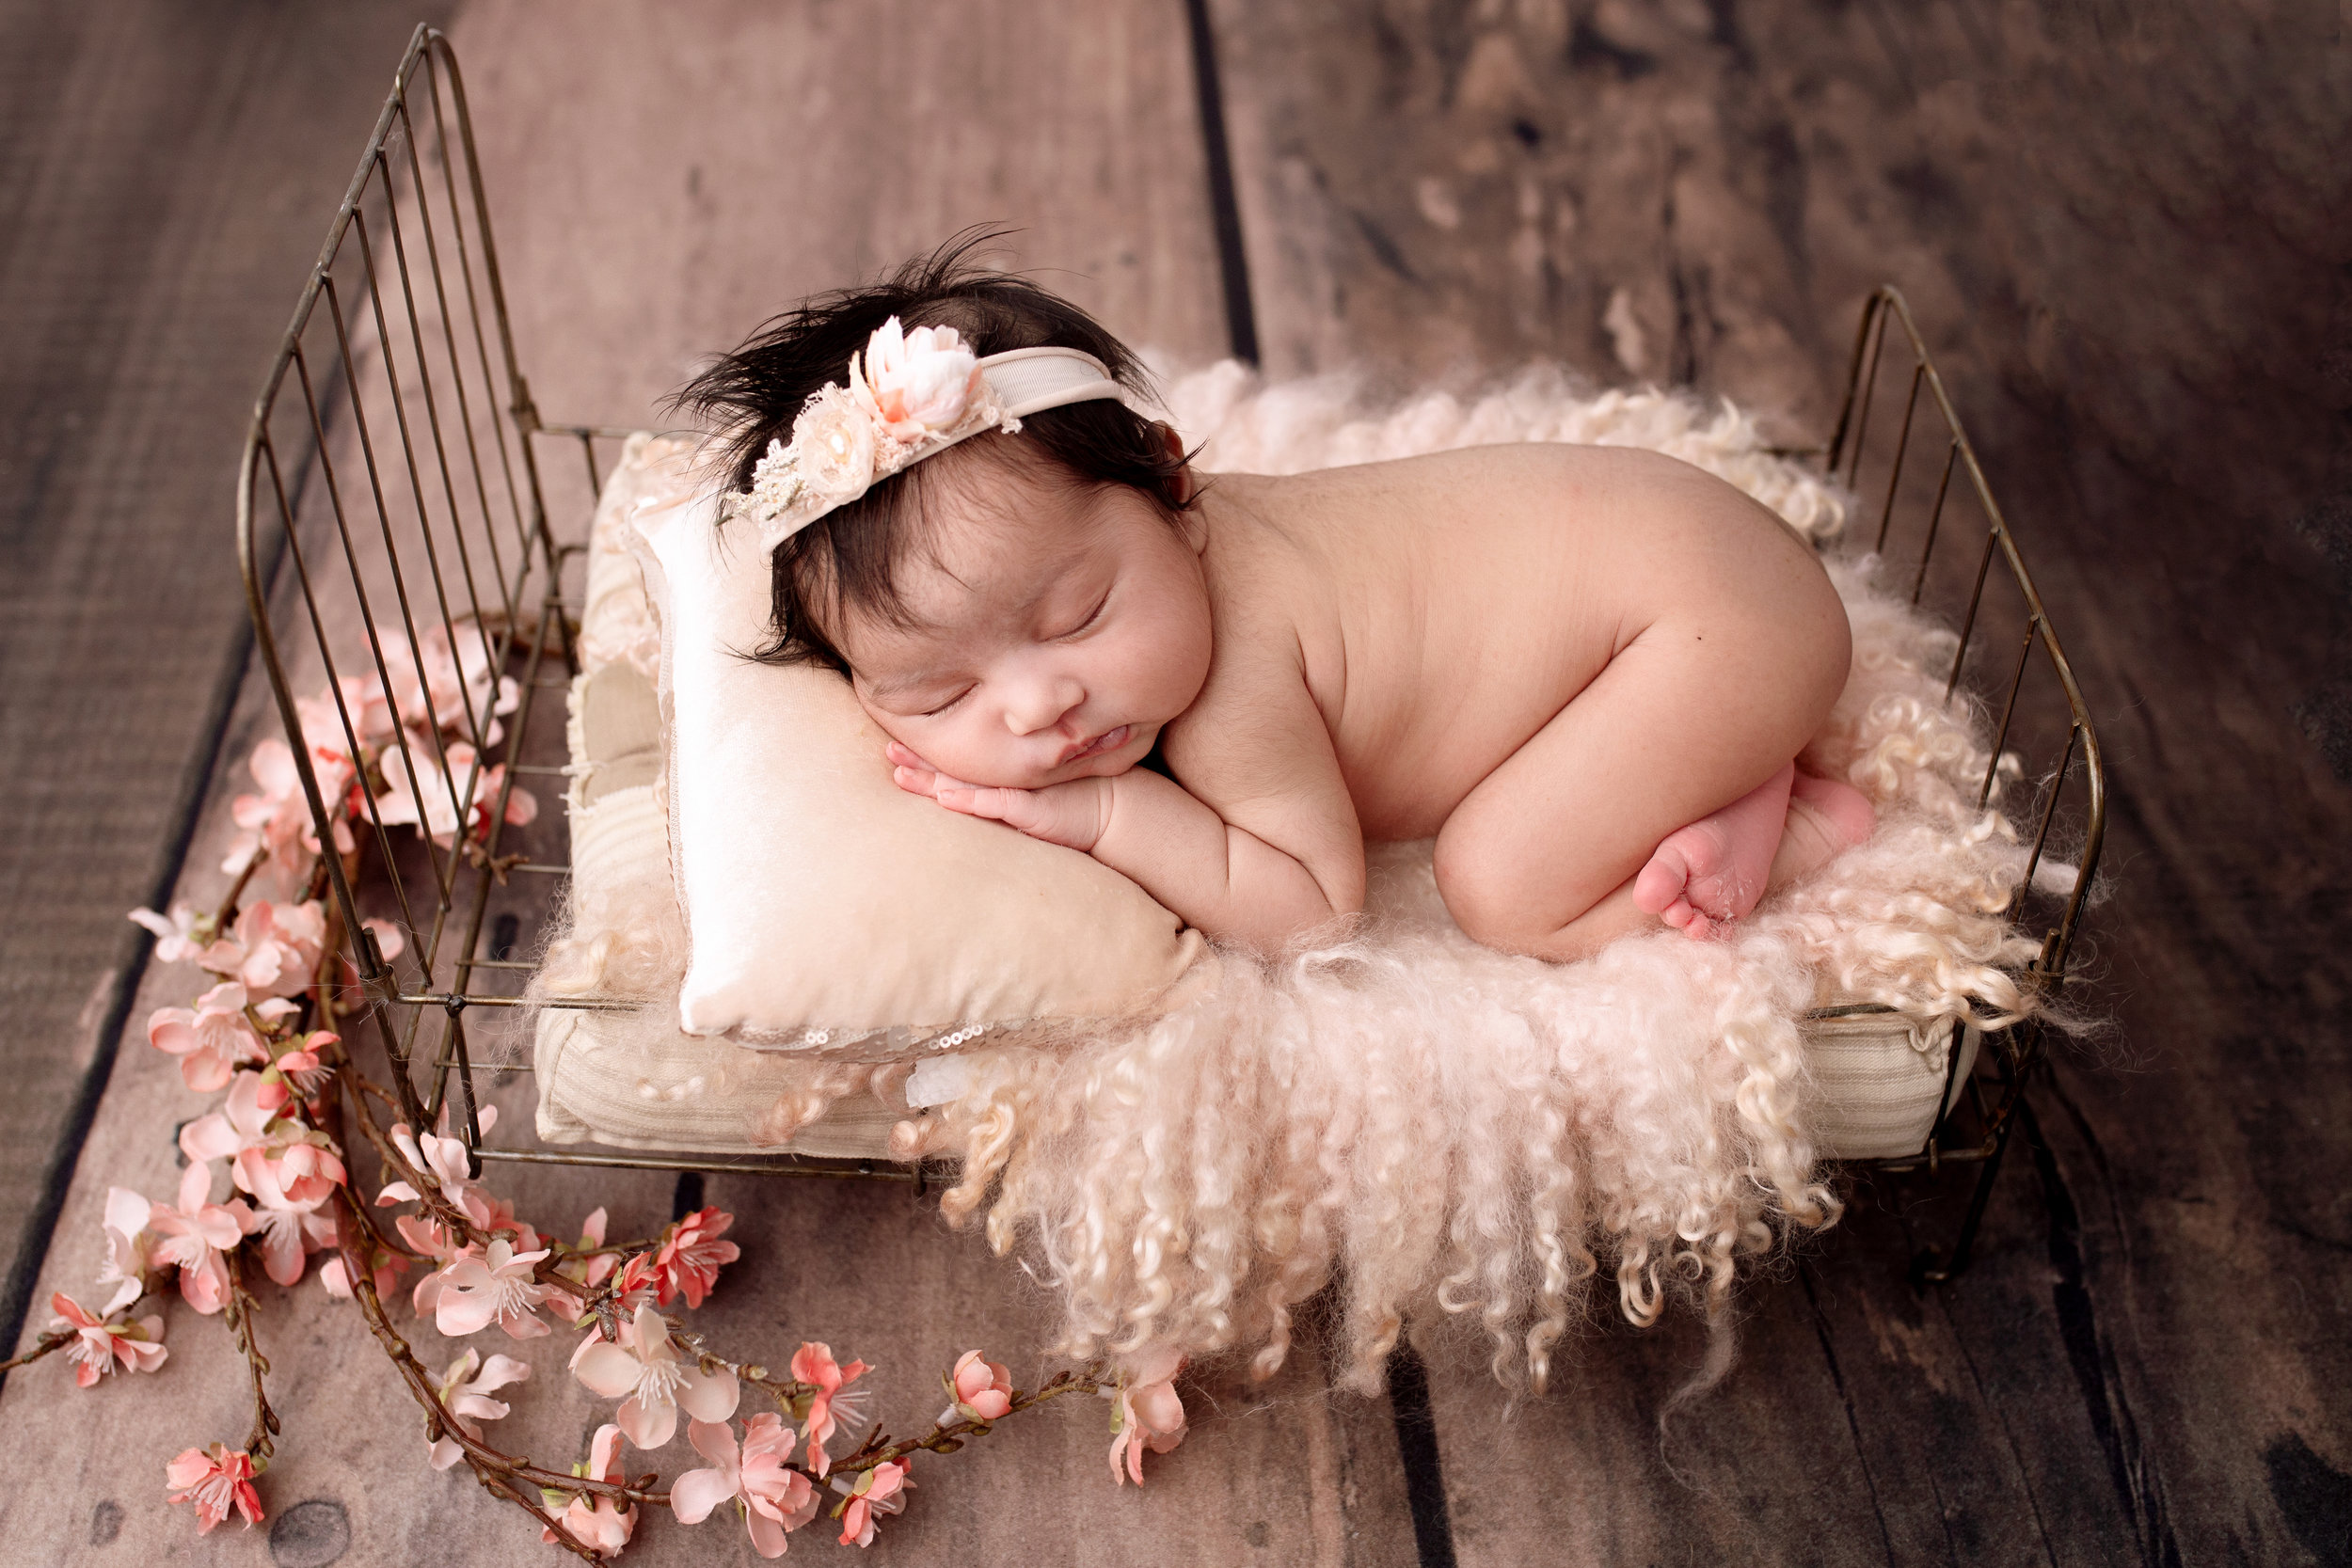 newborn baby on little bed with flowers